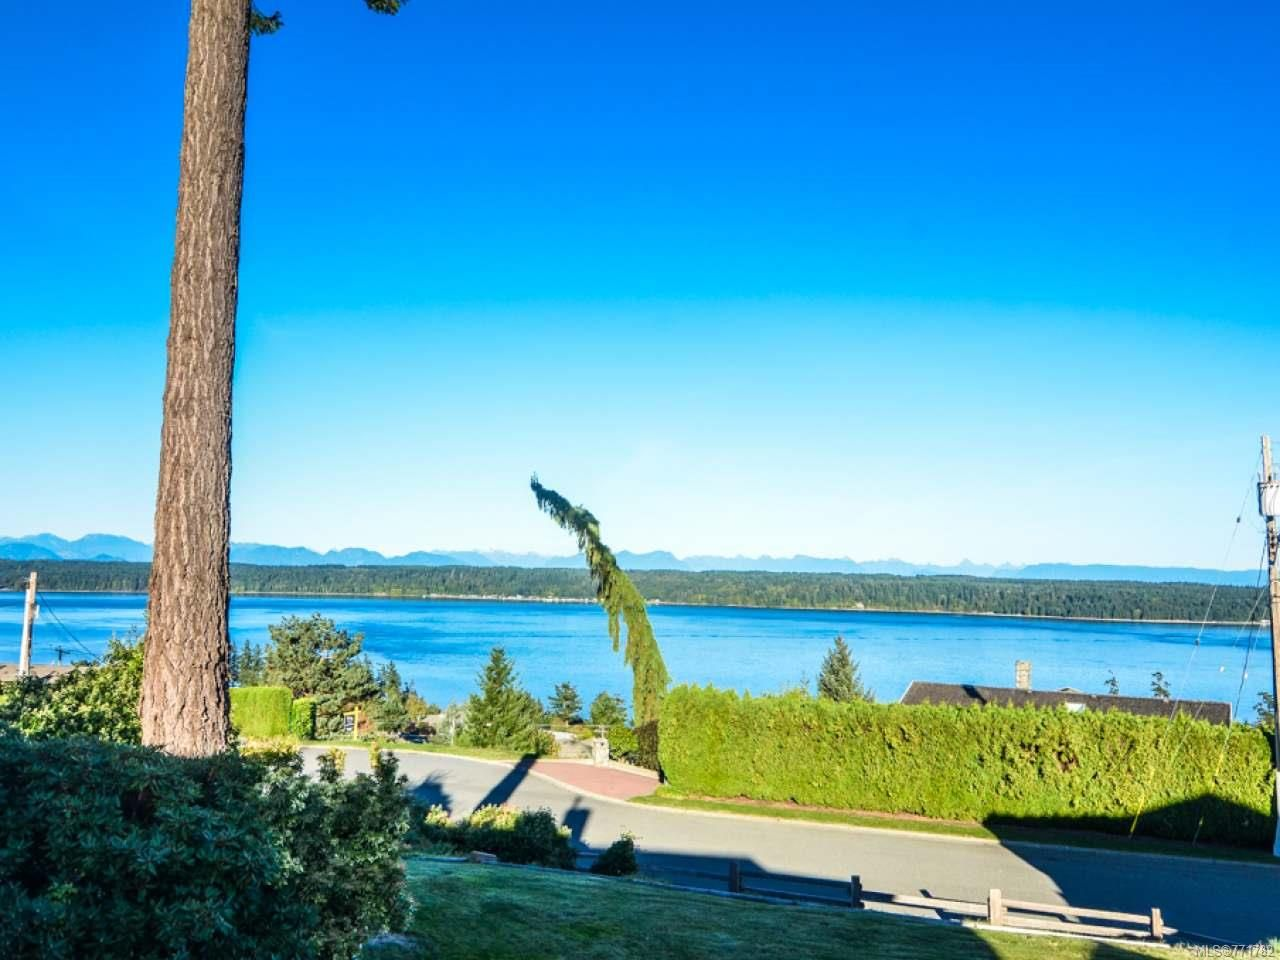 Photo 6: Photos: 451 S McLean St in CAMPBELL RIVER: CR Campbell River Central House for sale (Campbell River)  : MLS®# 771782